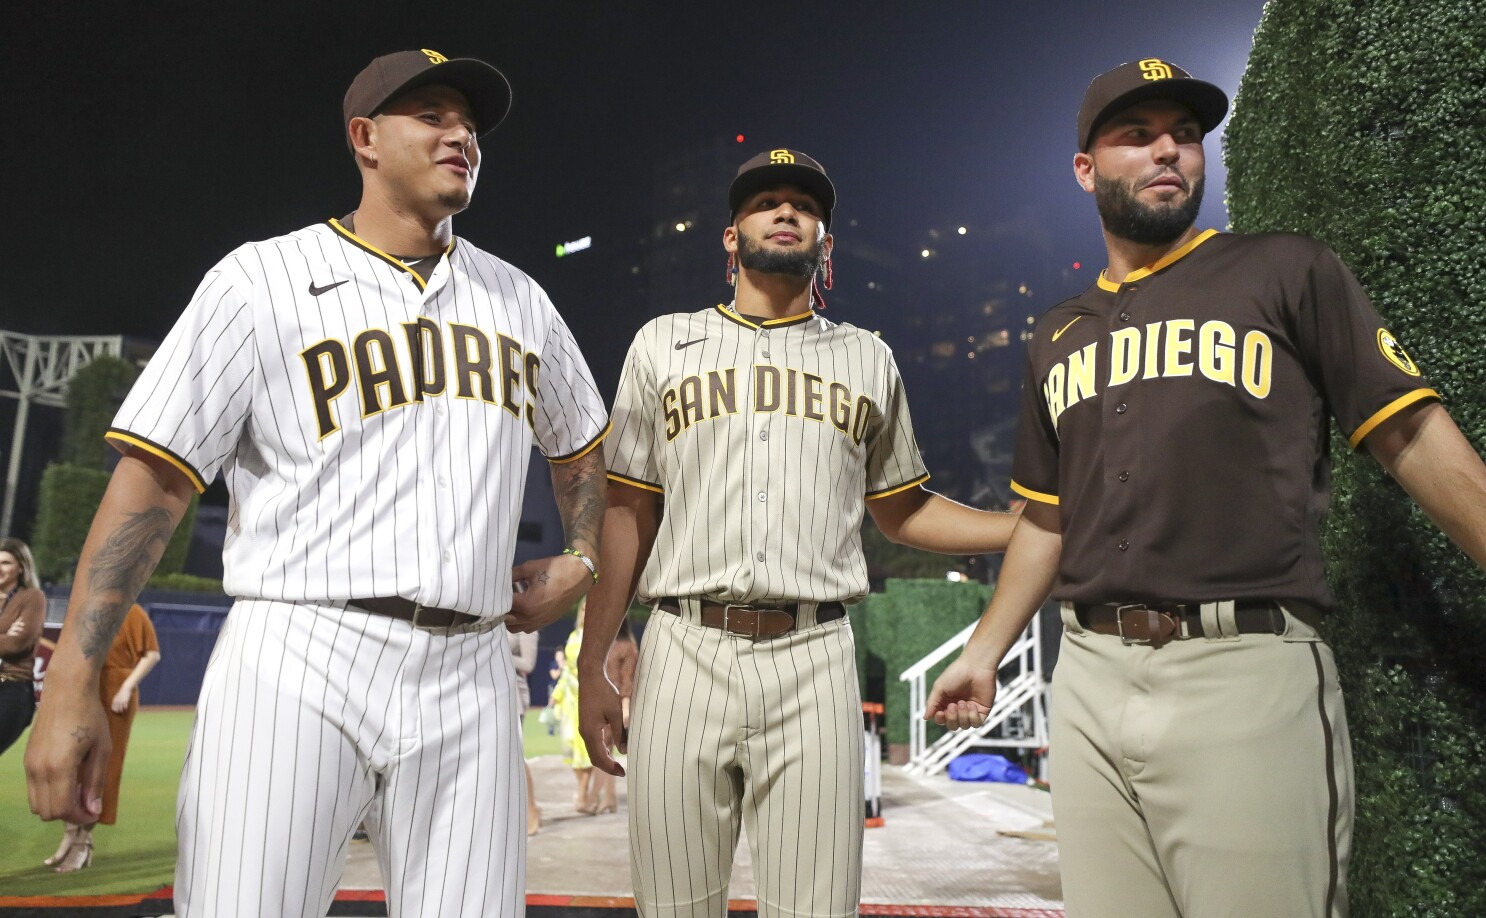 Padres Ready For Wild 2020 Ride Hoping For Big Cake At The End The San Diego Union Tribune